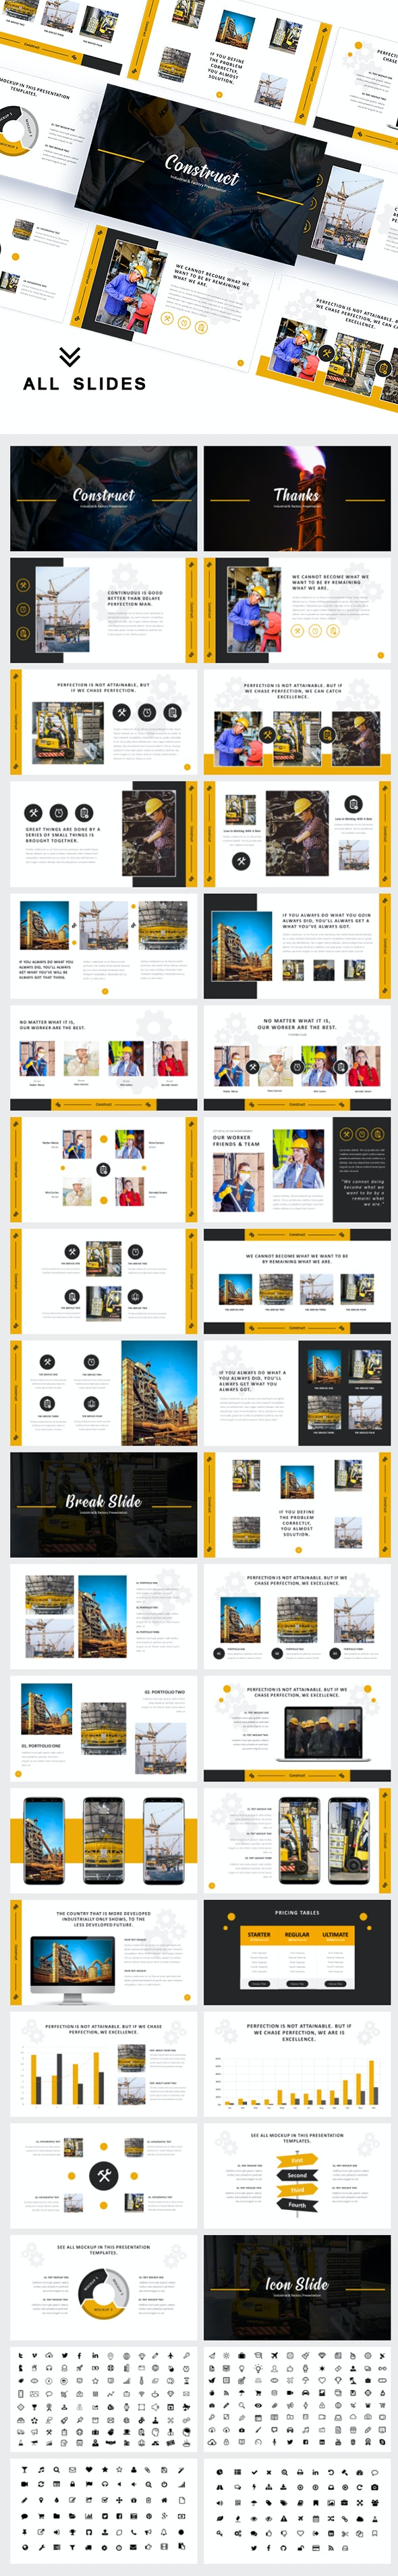 Construct Industrial & Factory Google Slides Template - Google Slides Presentation Templates